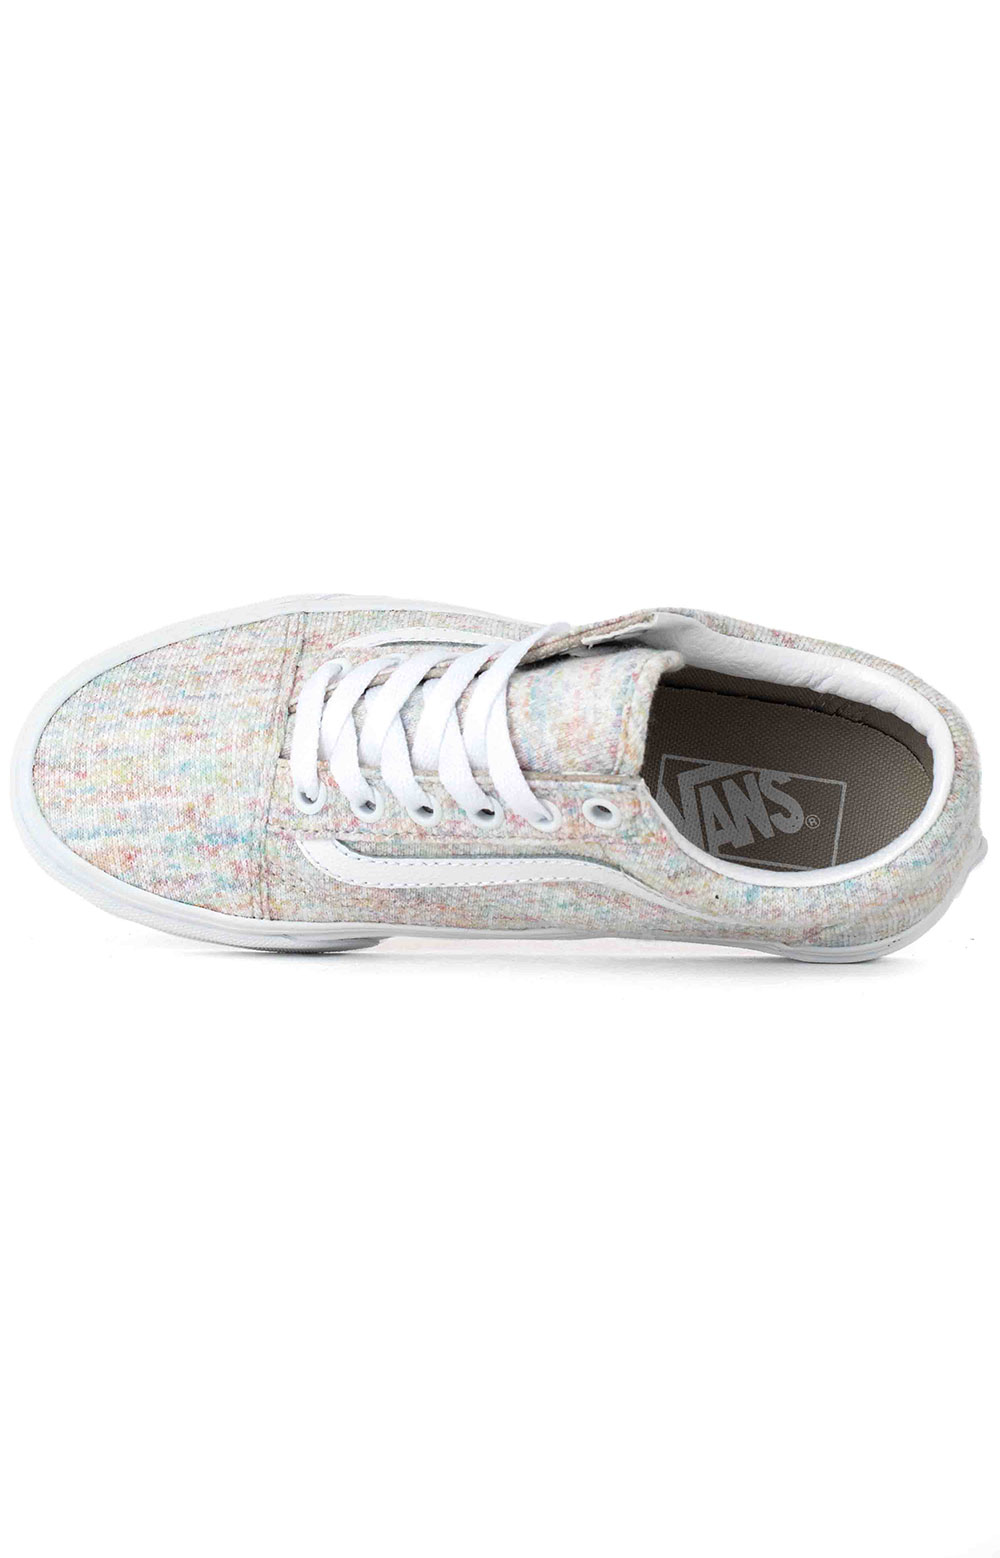 (U3BWN5) Rainbow Jersey Old Skool Shoe - Multi 2